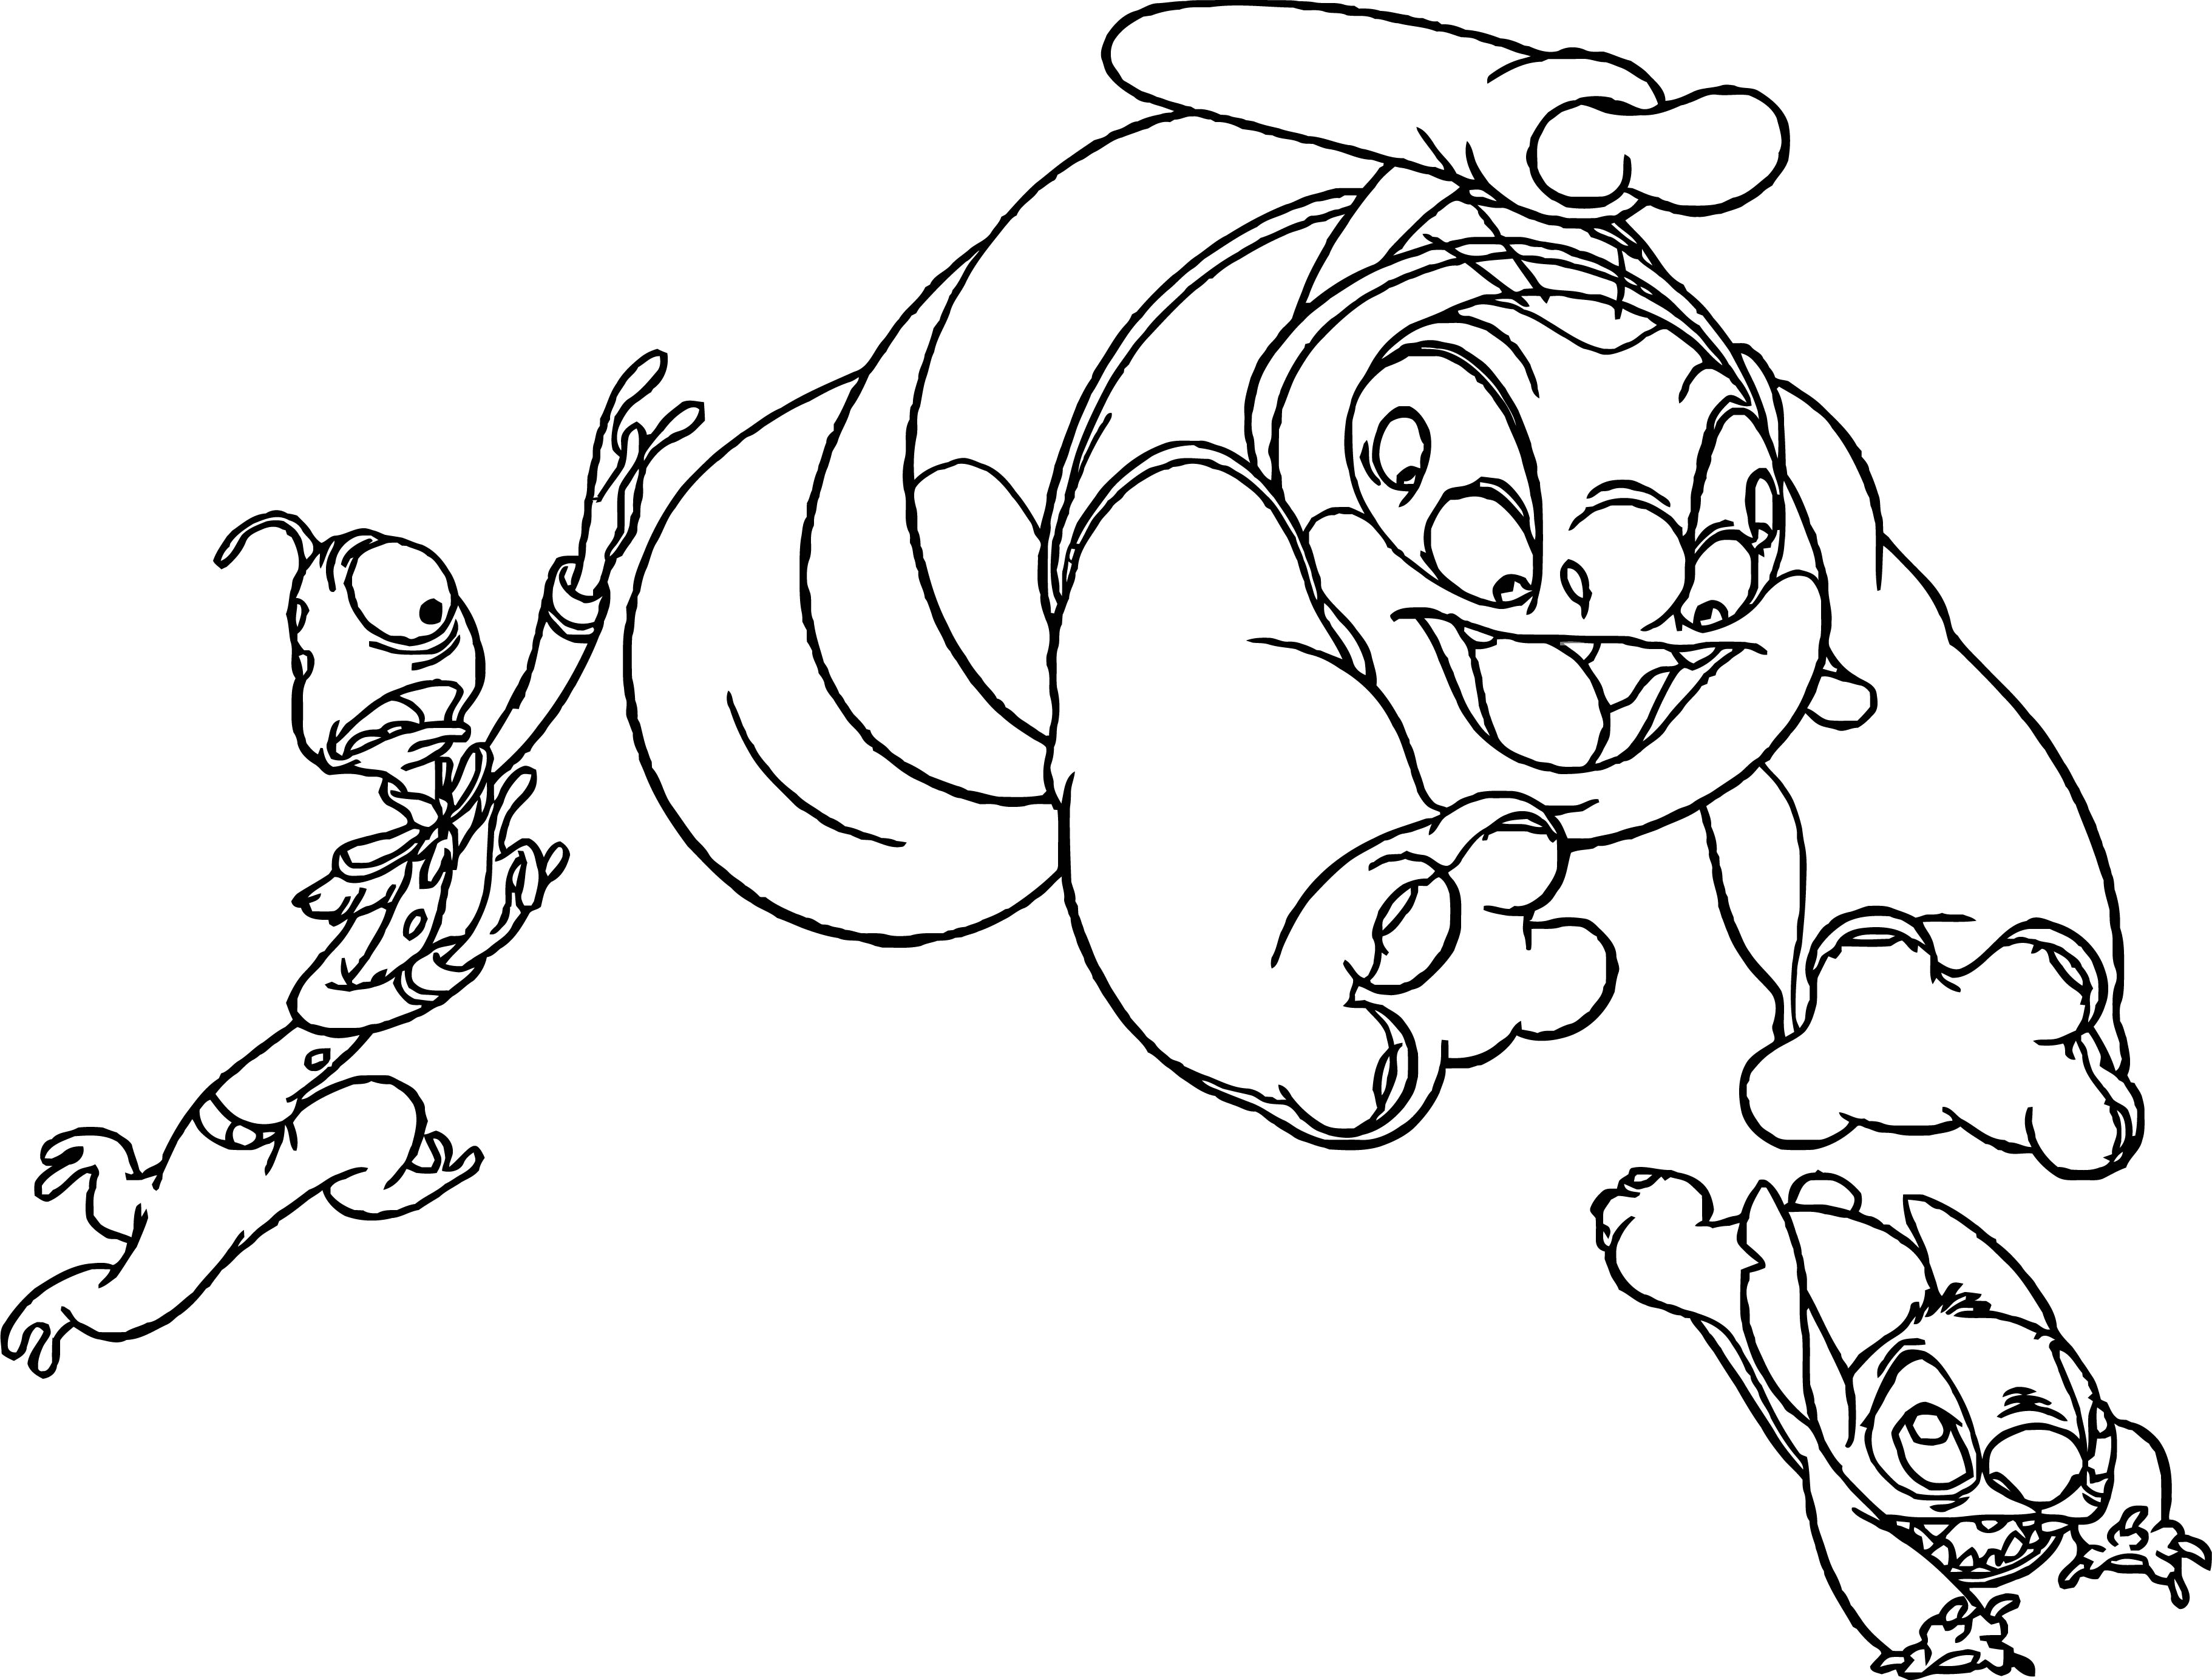 Lilo And Stitch Catch Game Coloring Pages